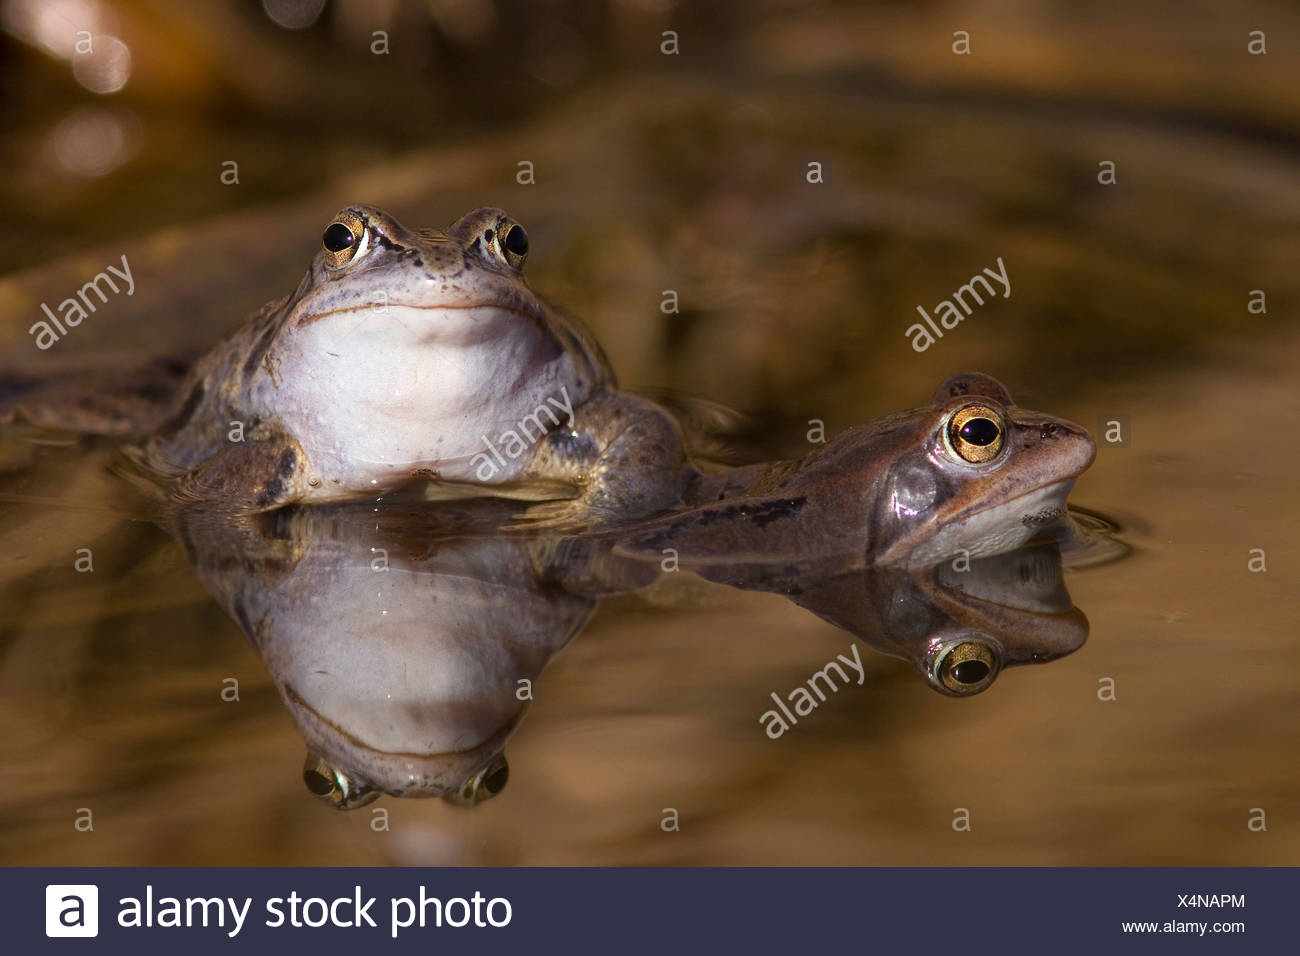 Close-up of two frogs in a pond Stock Photo